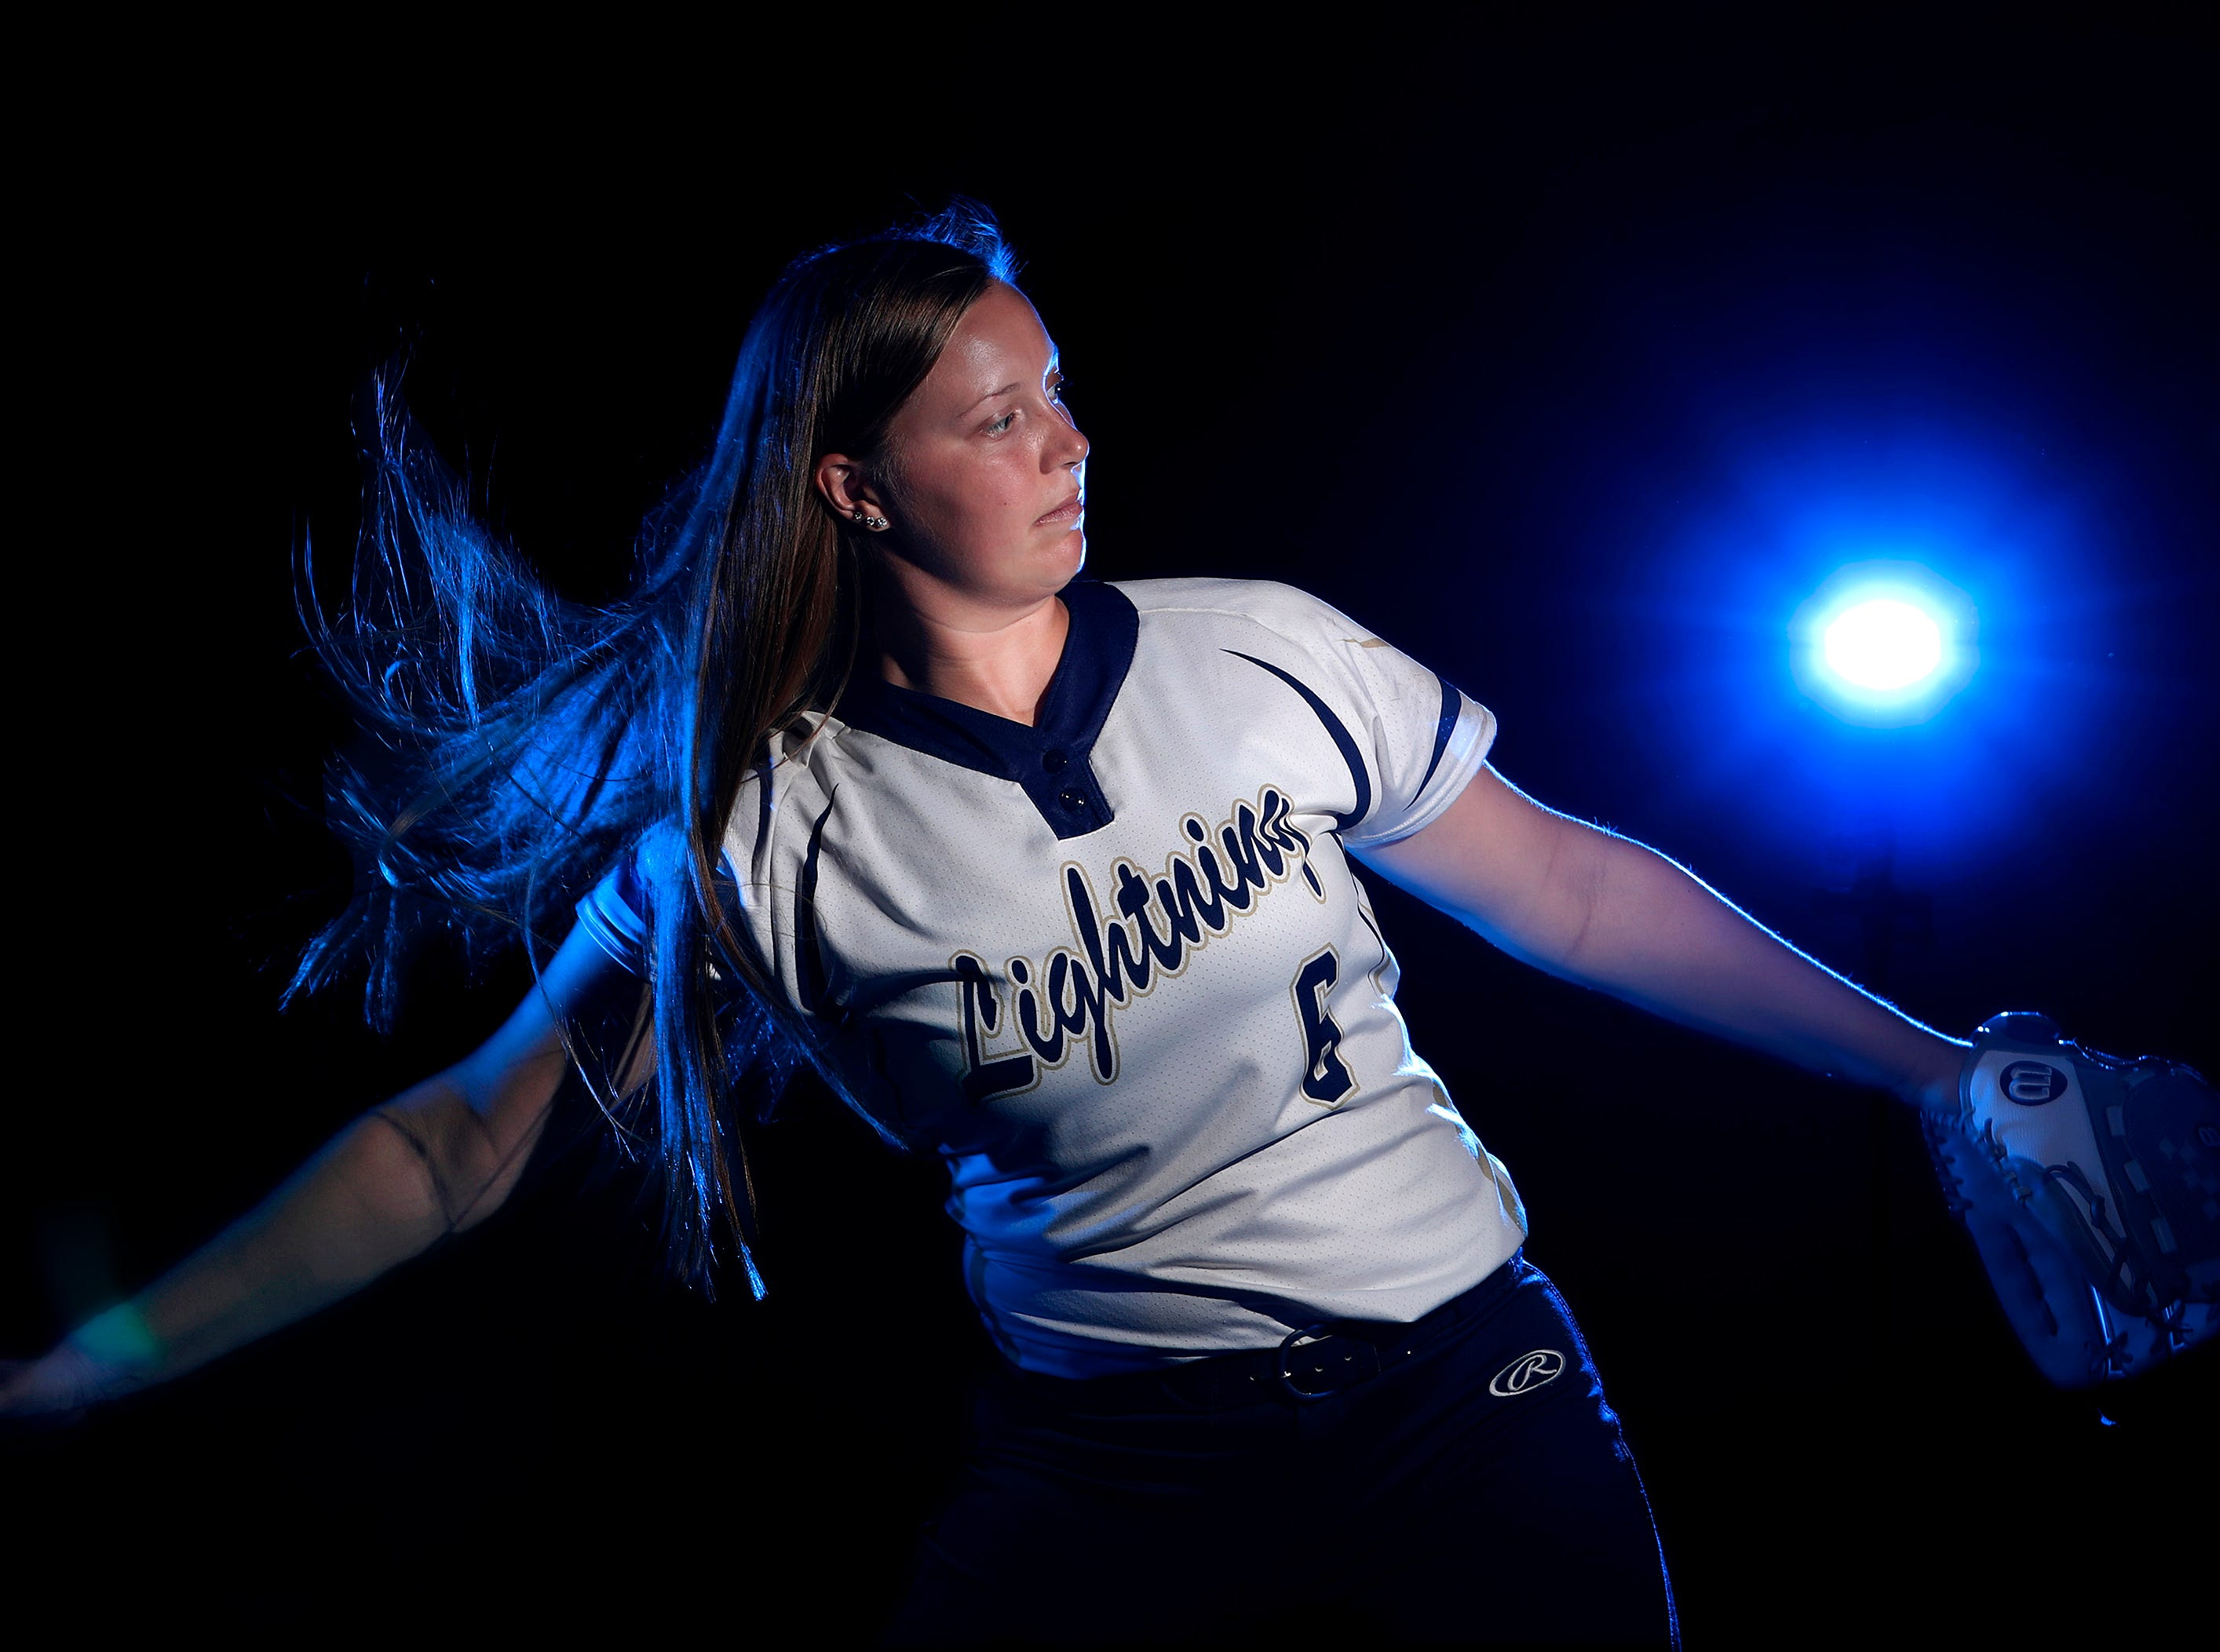 Marissa Mullen, with Appleton North High School, is the softball athlete of the year Wednesday, July 11, 2018, in Appleton, Wis. 